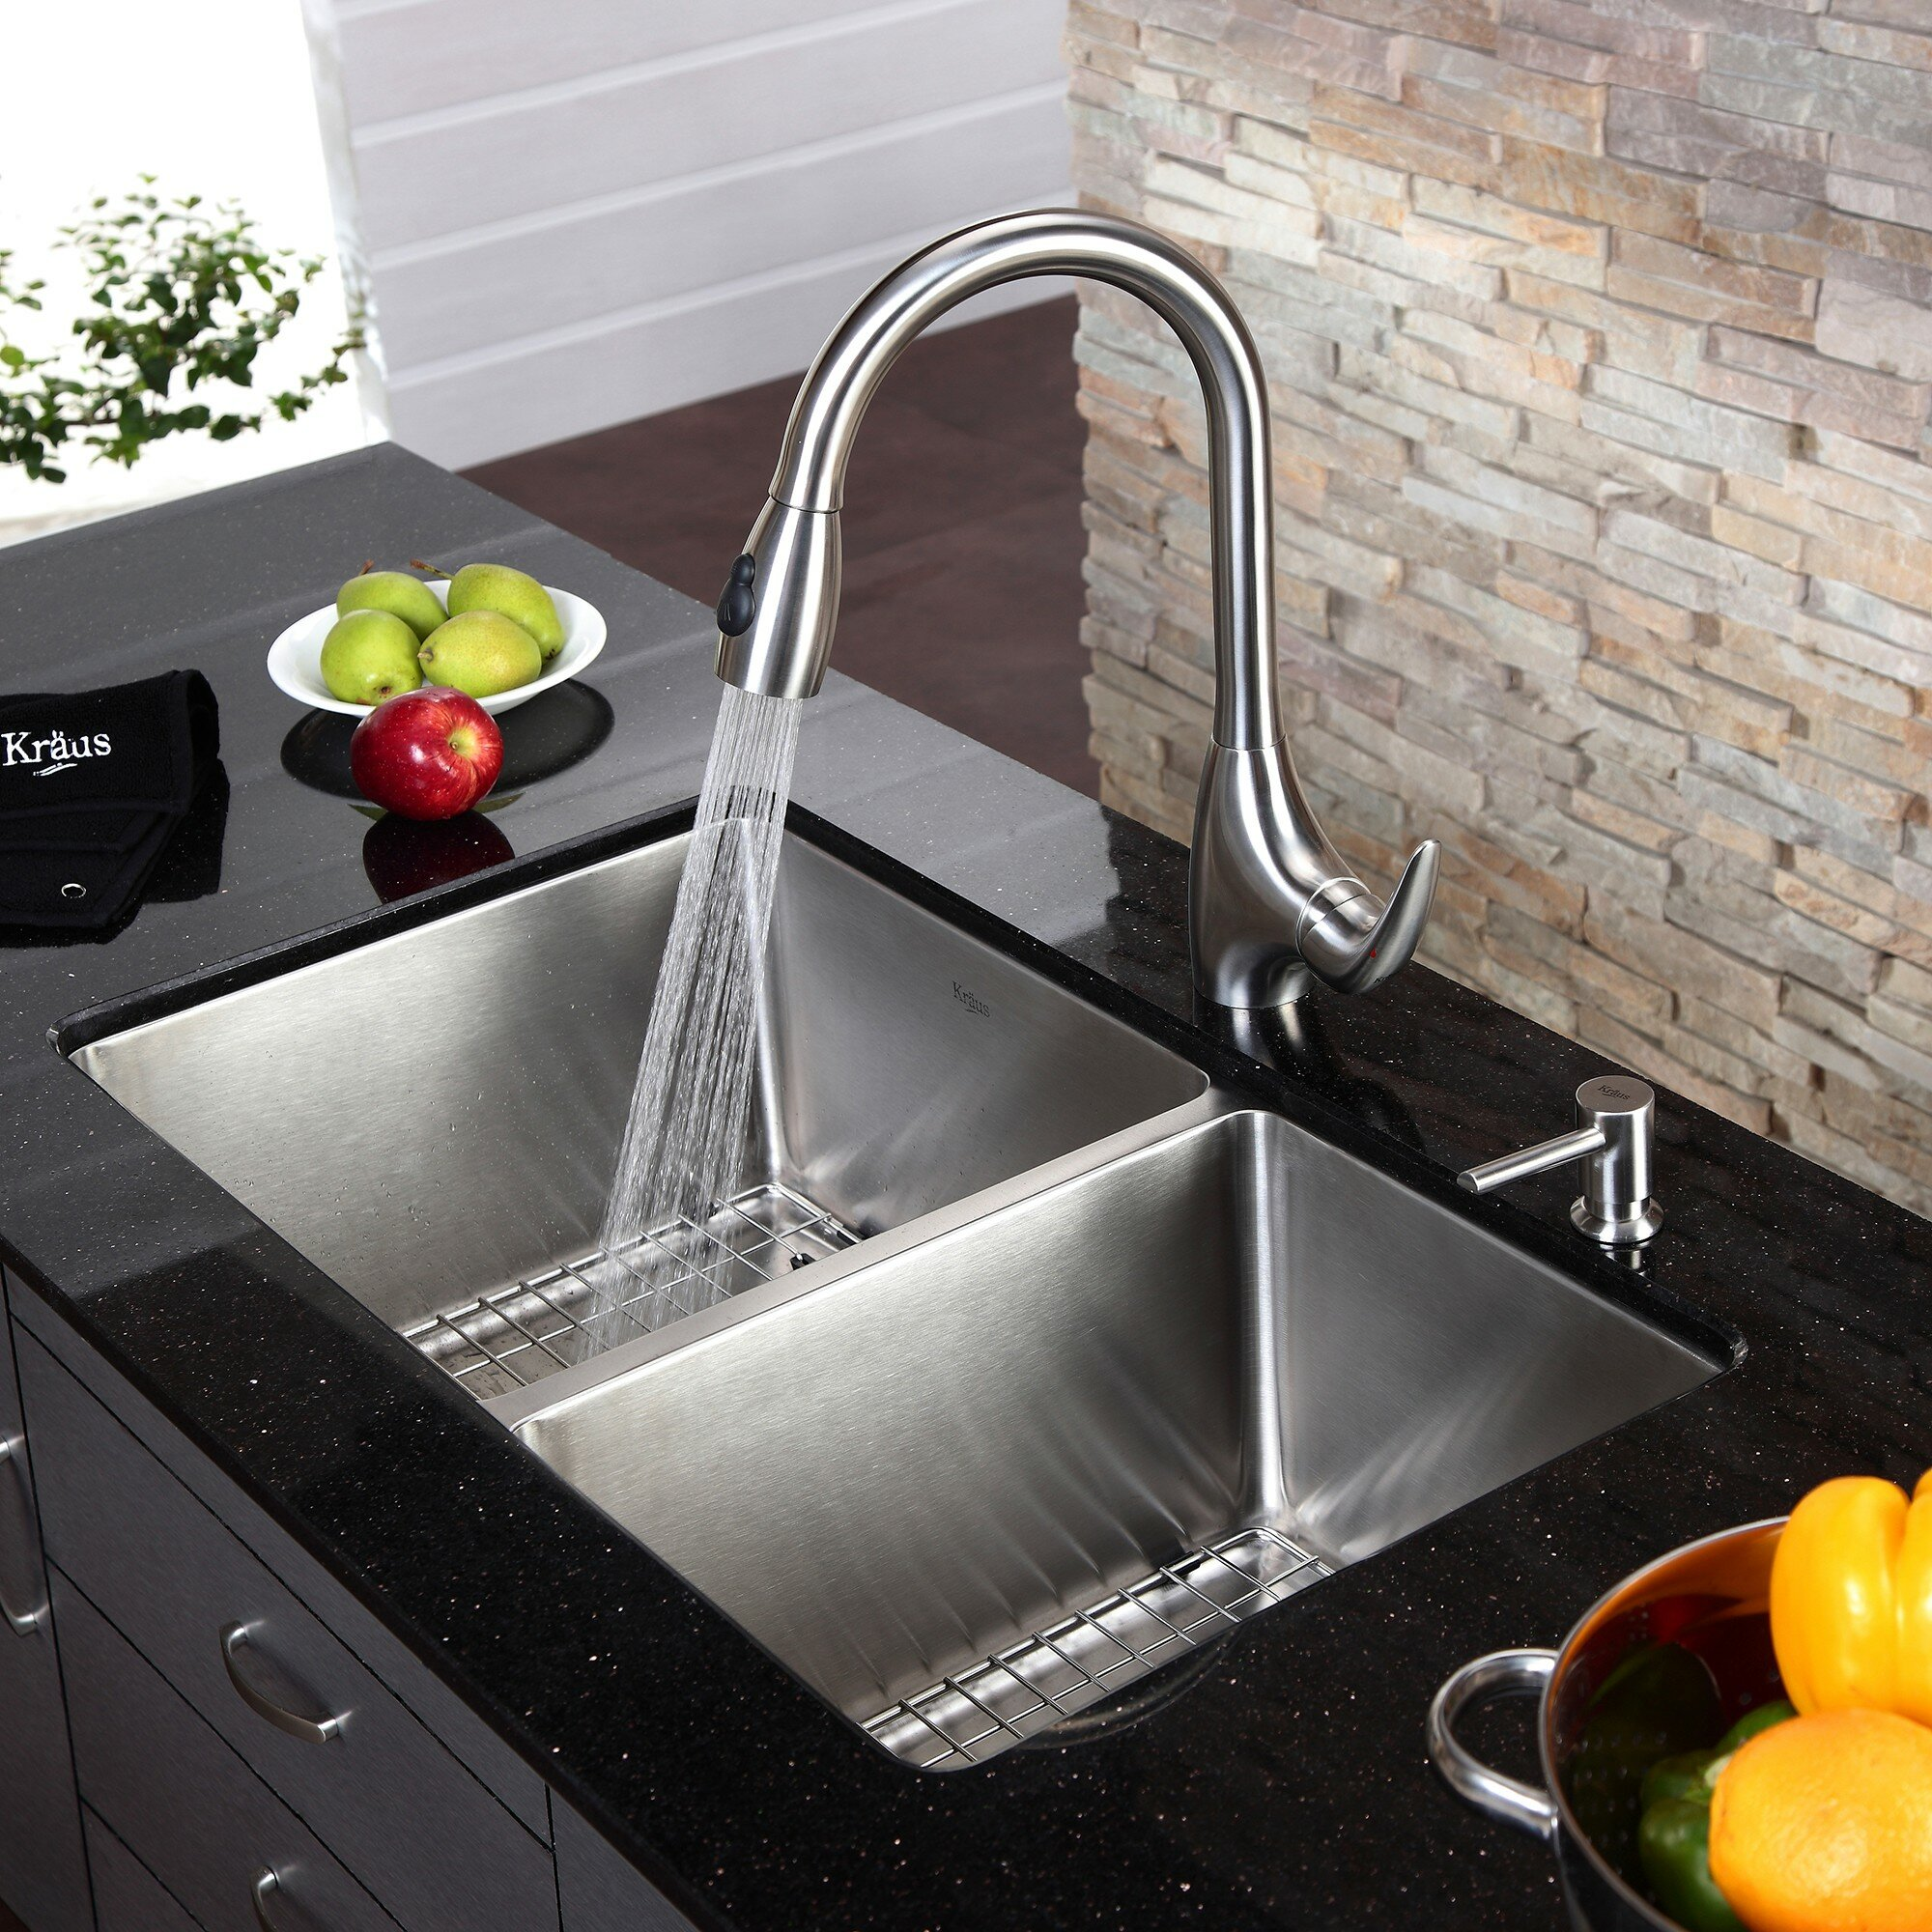 Kitchen Sinks Stainless Steel | Single Stainless Steel Kitchen Sink | Brushed Stainless Steel Undermount Kitchen Sink